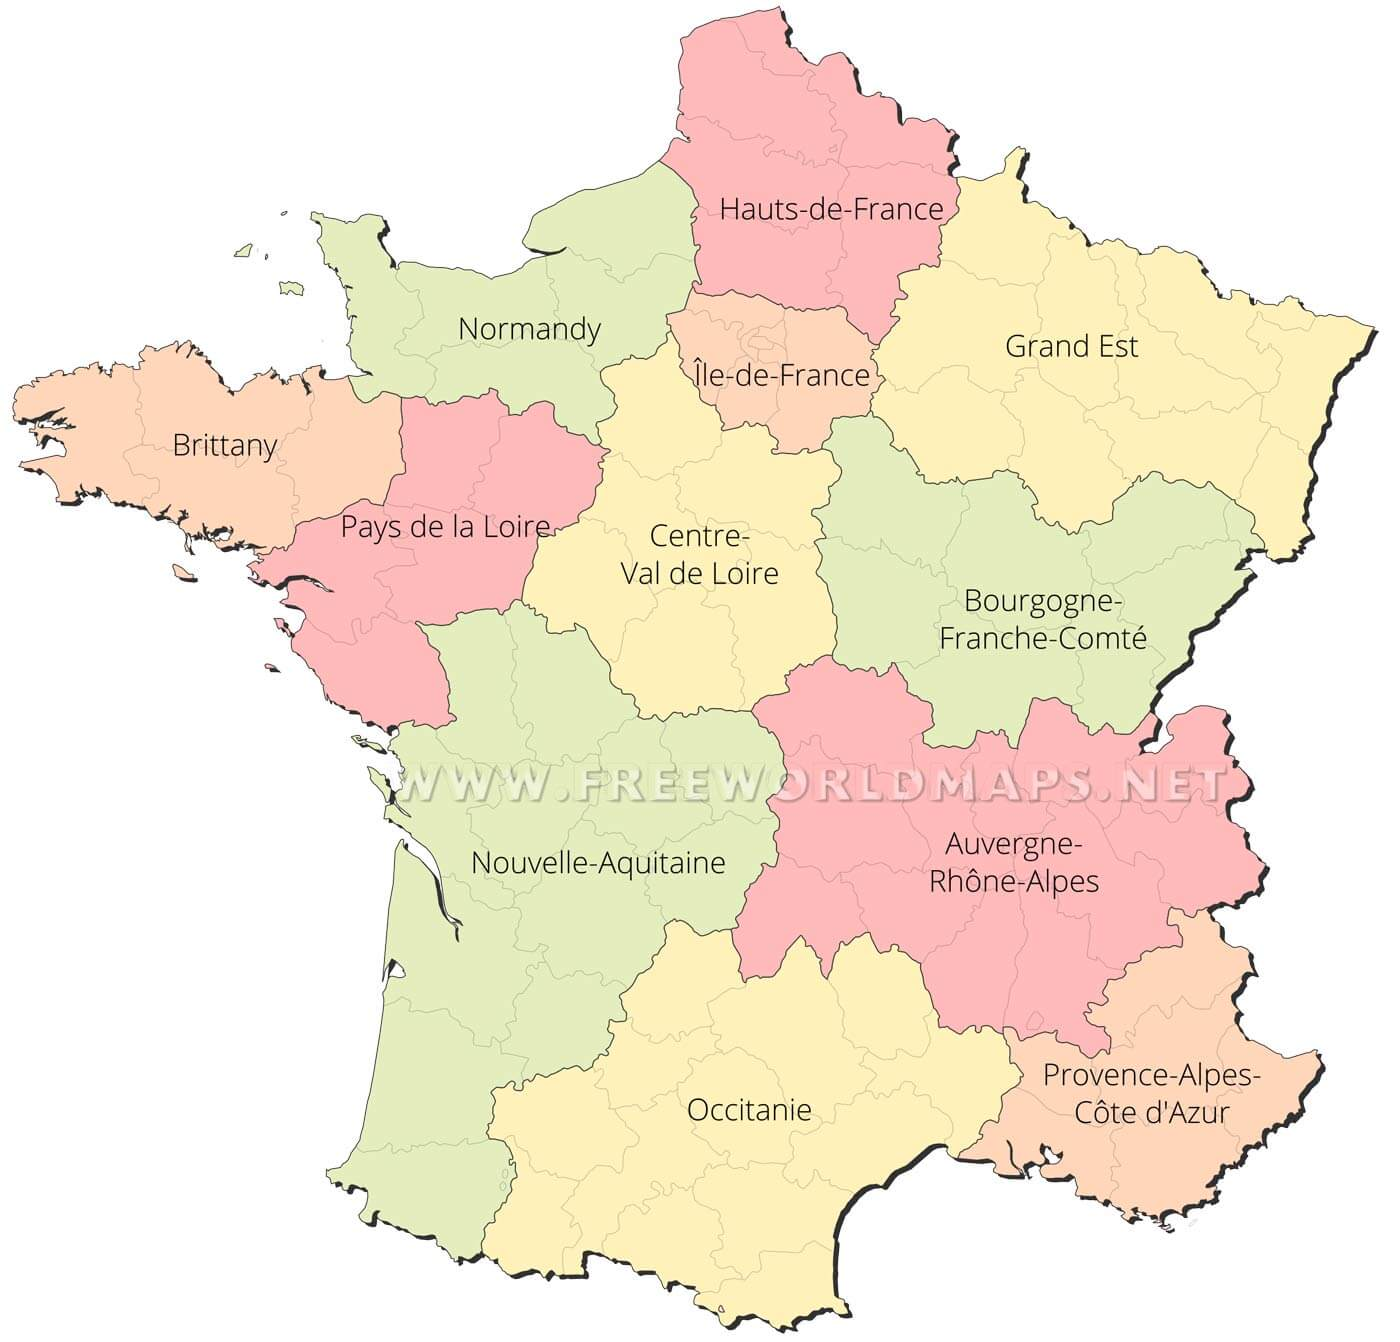 France On A Map Of Europe.France Political Map